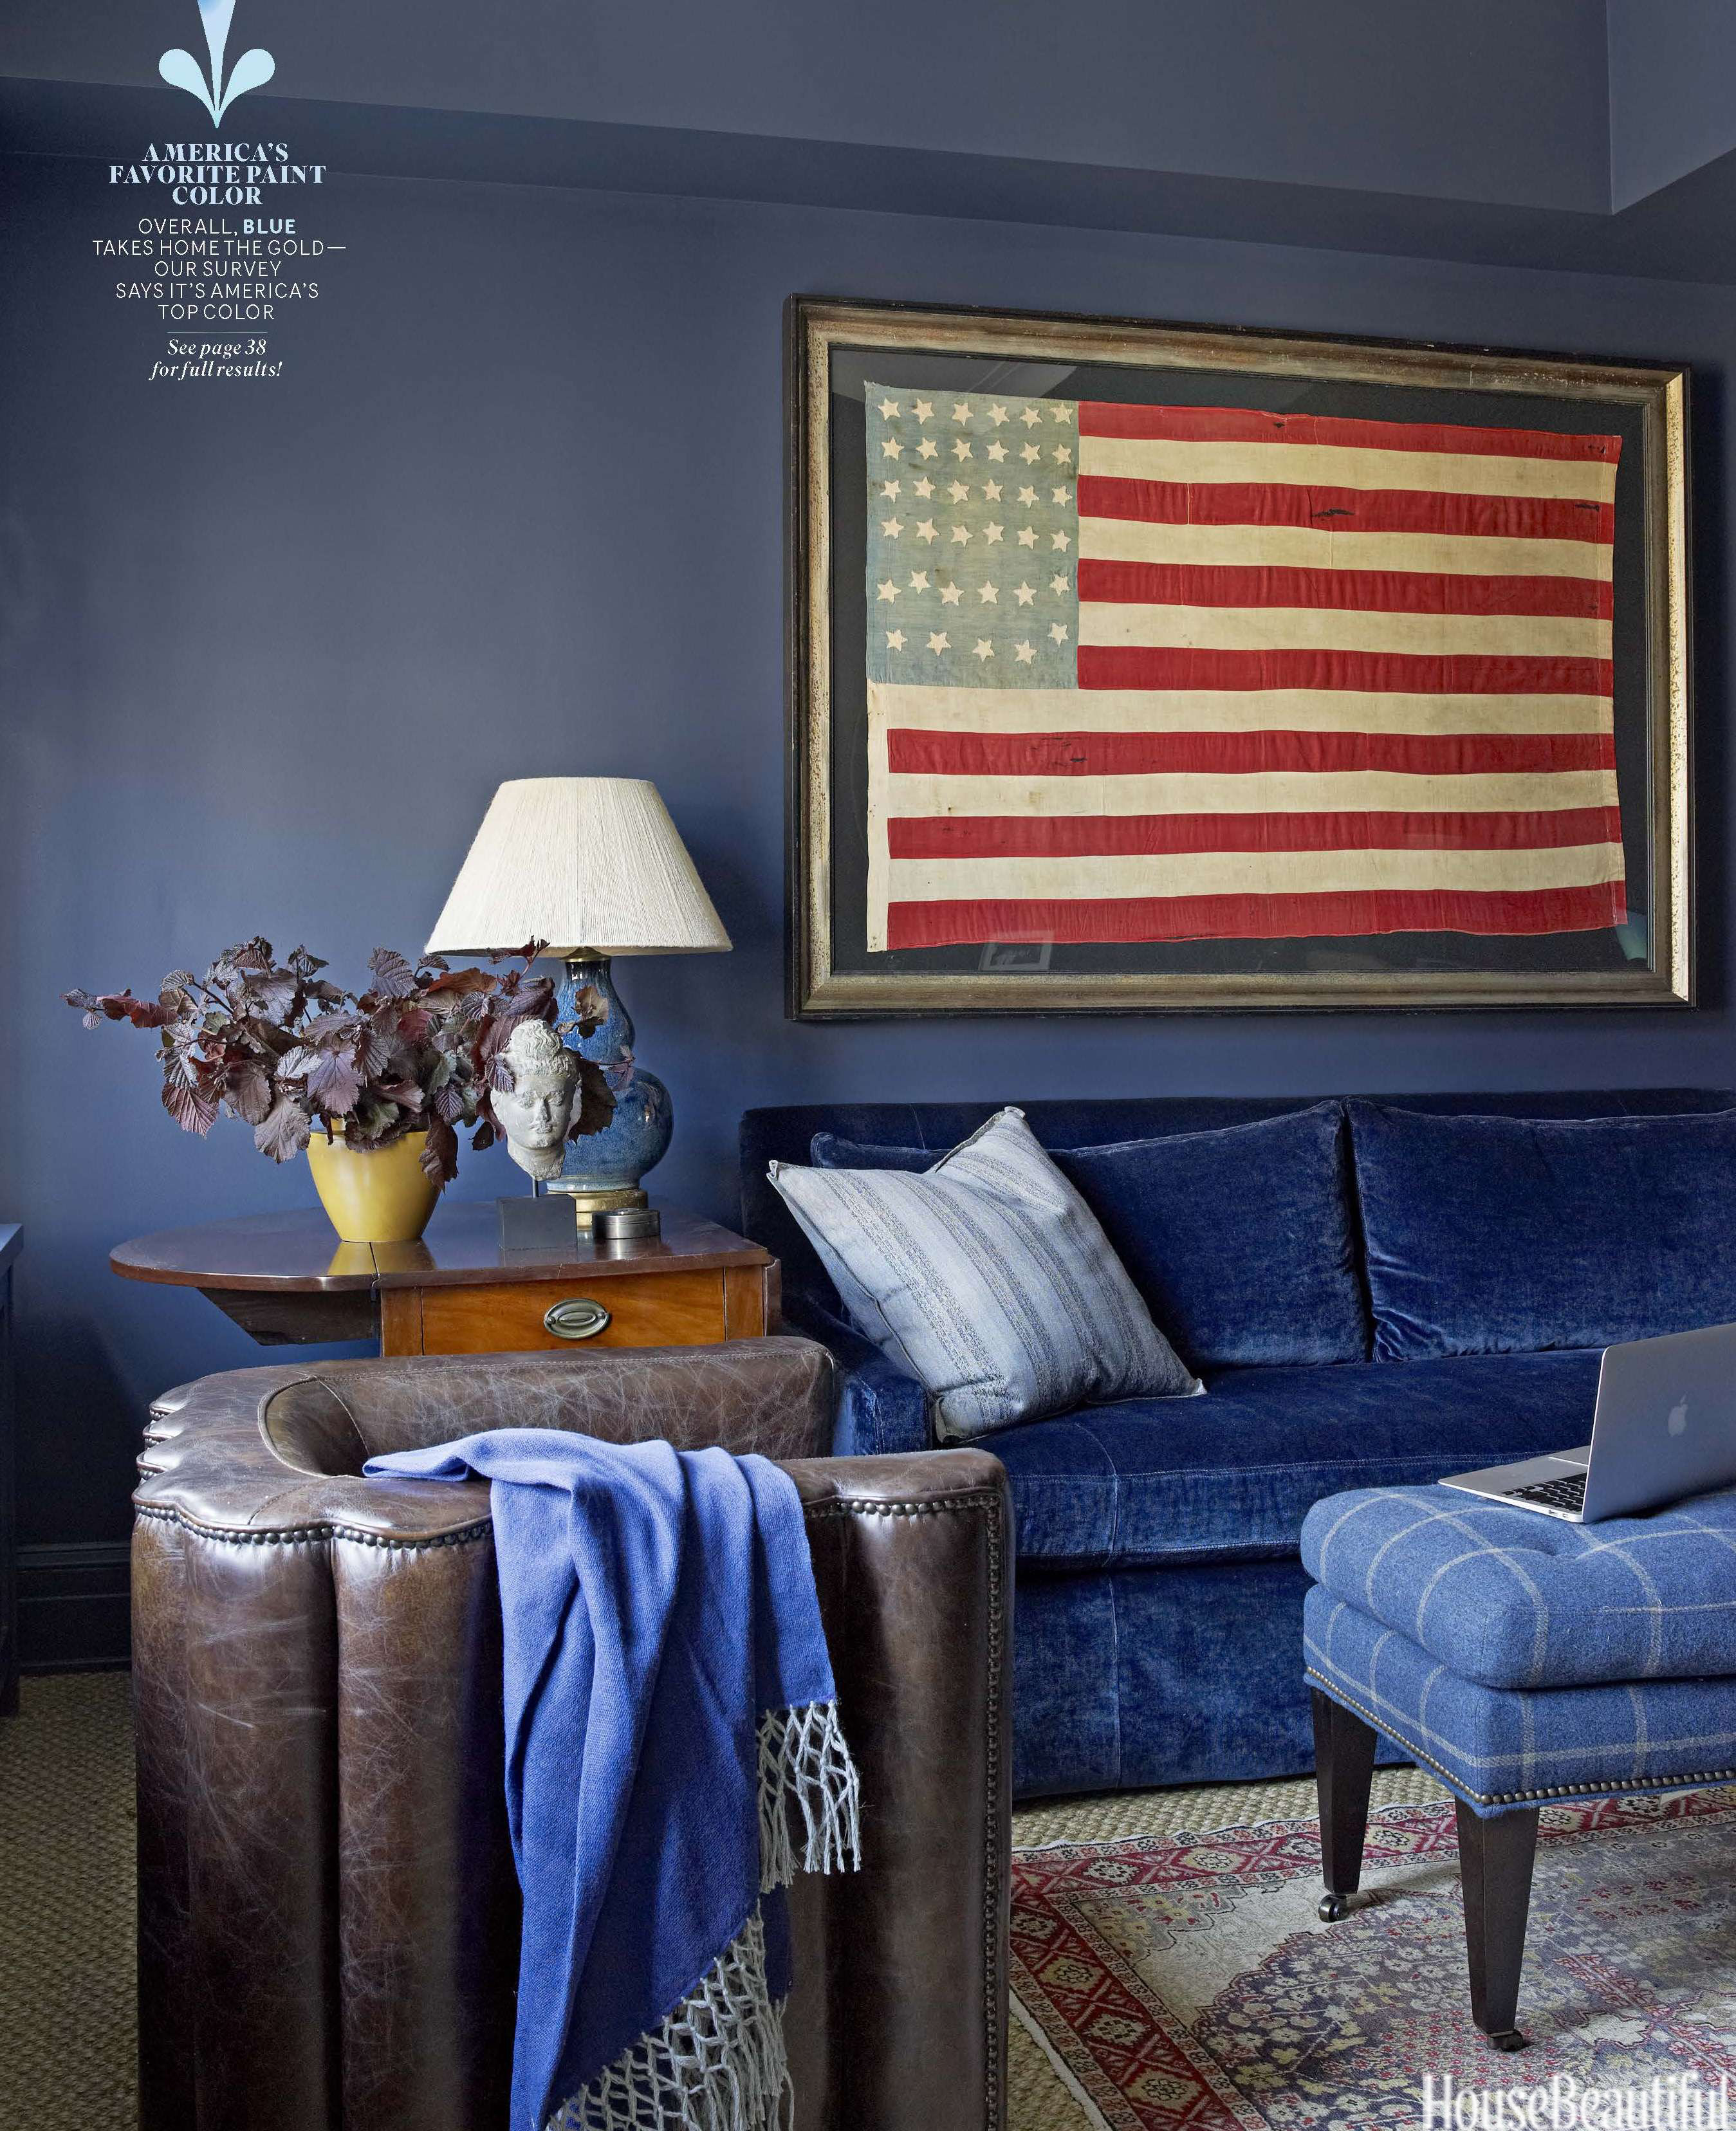 House Beautiful report names blue America's favorite color